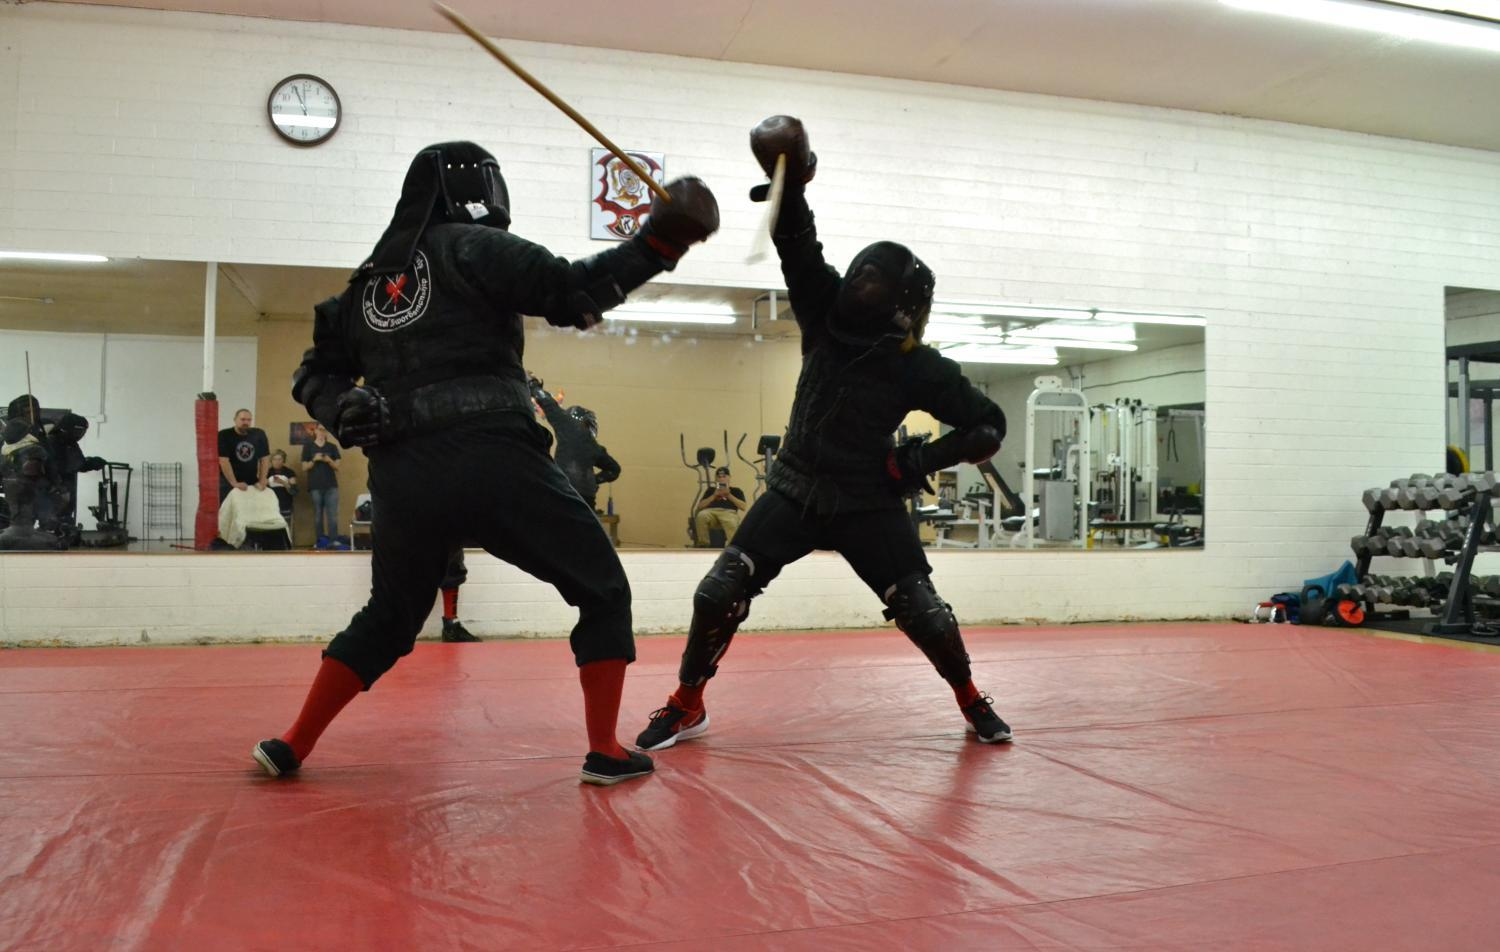 players fighting